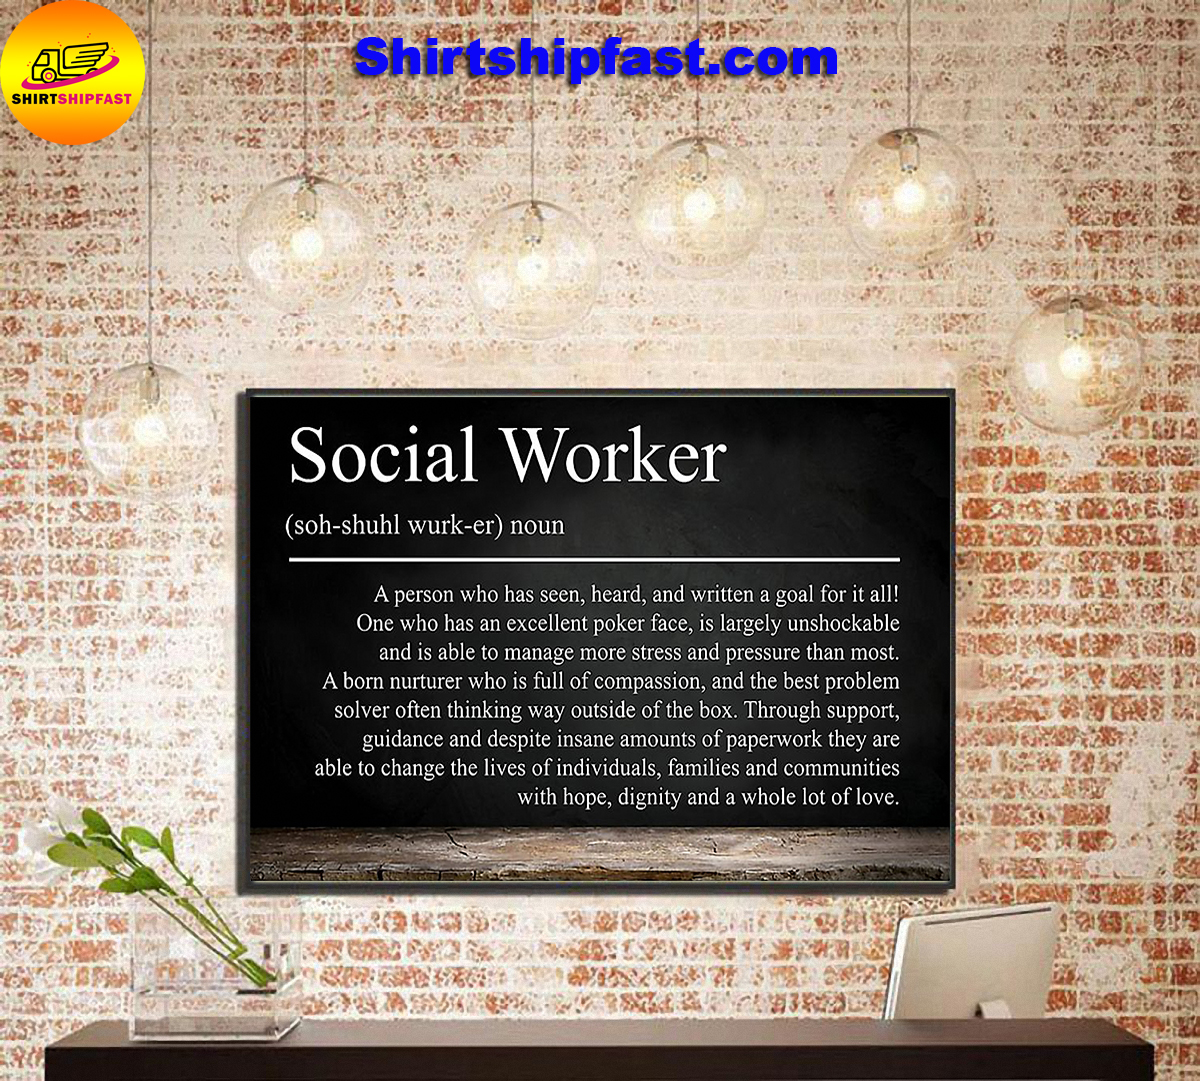 Social worker definition poster - Picture 1